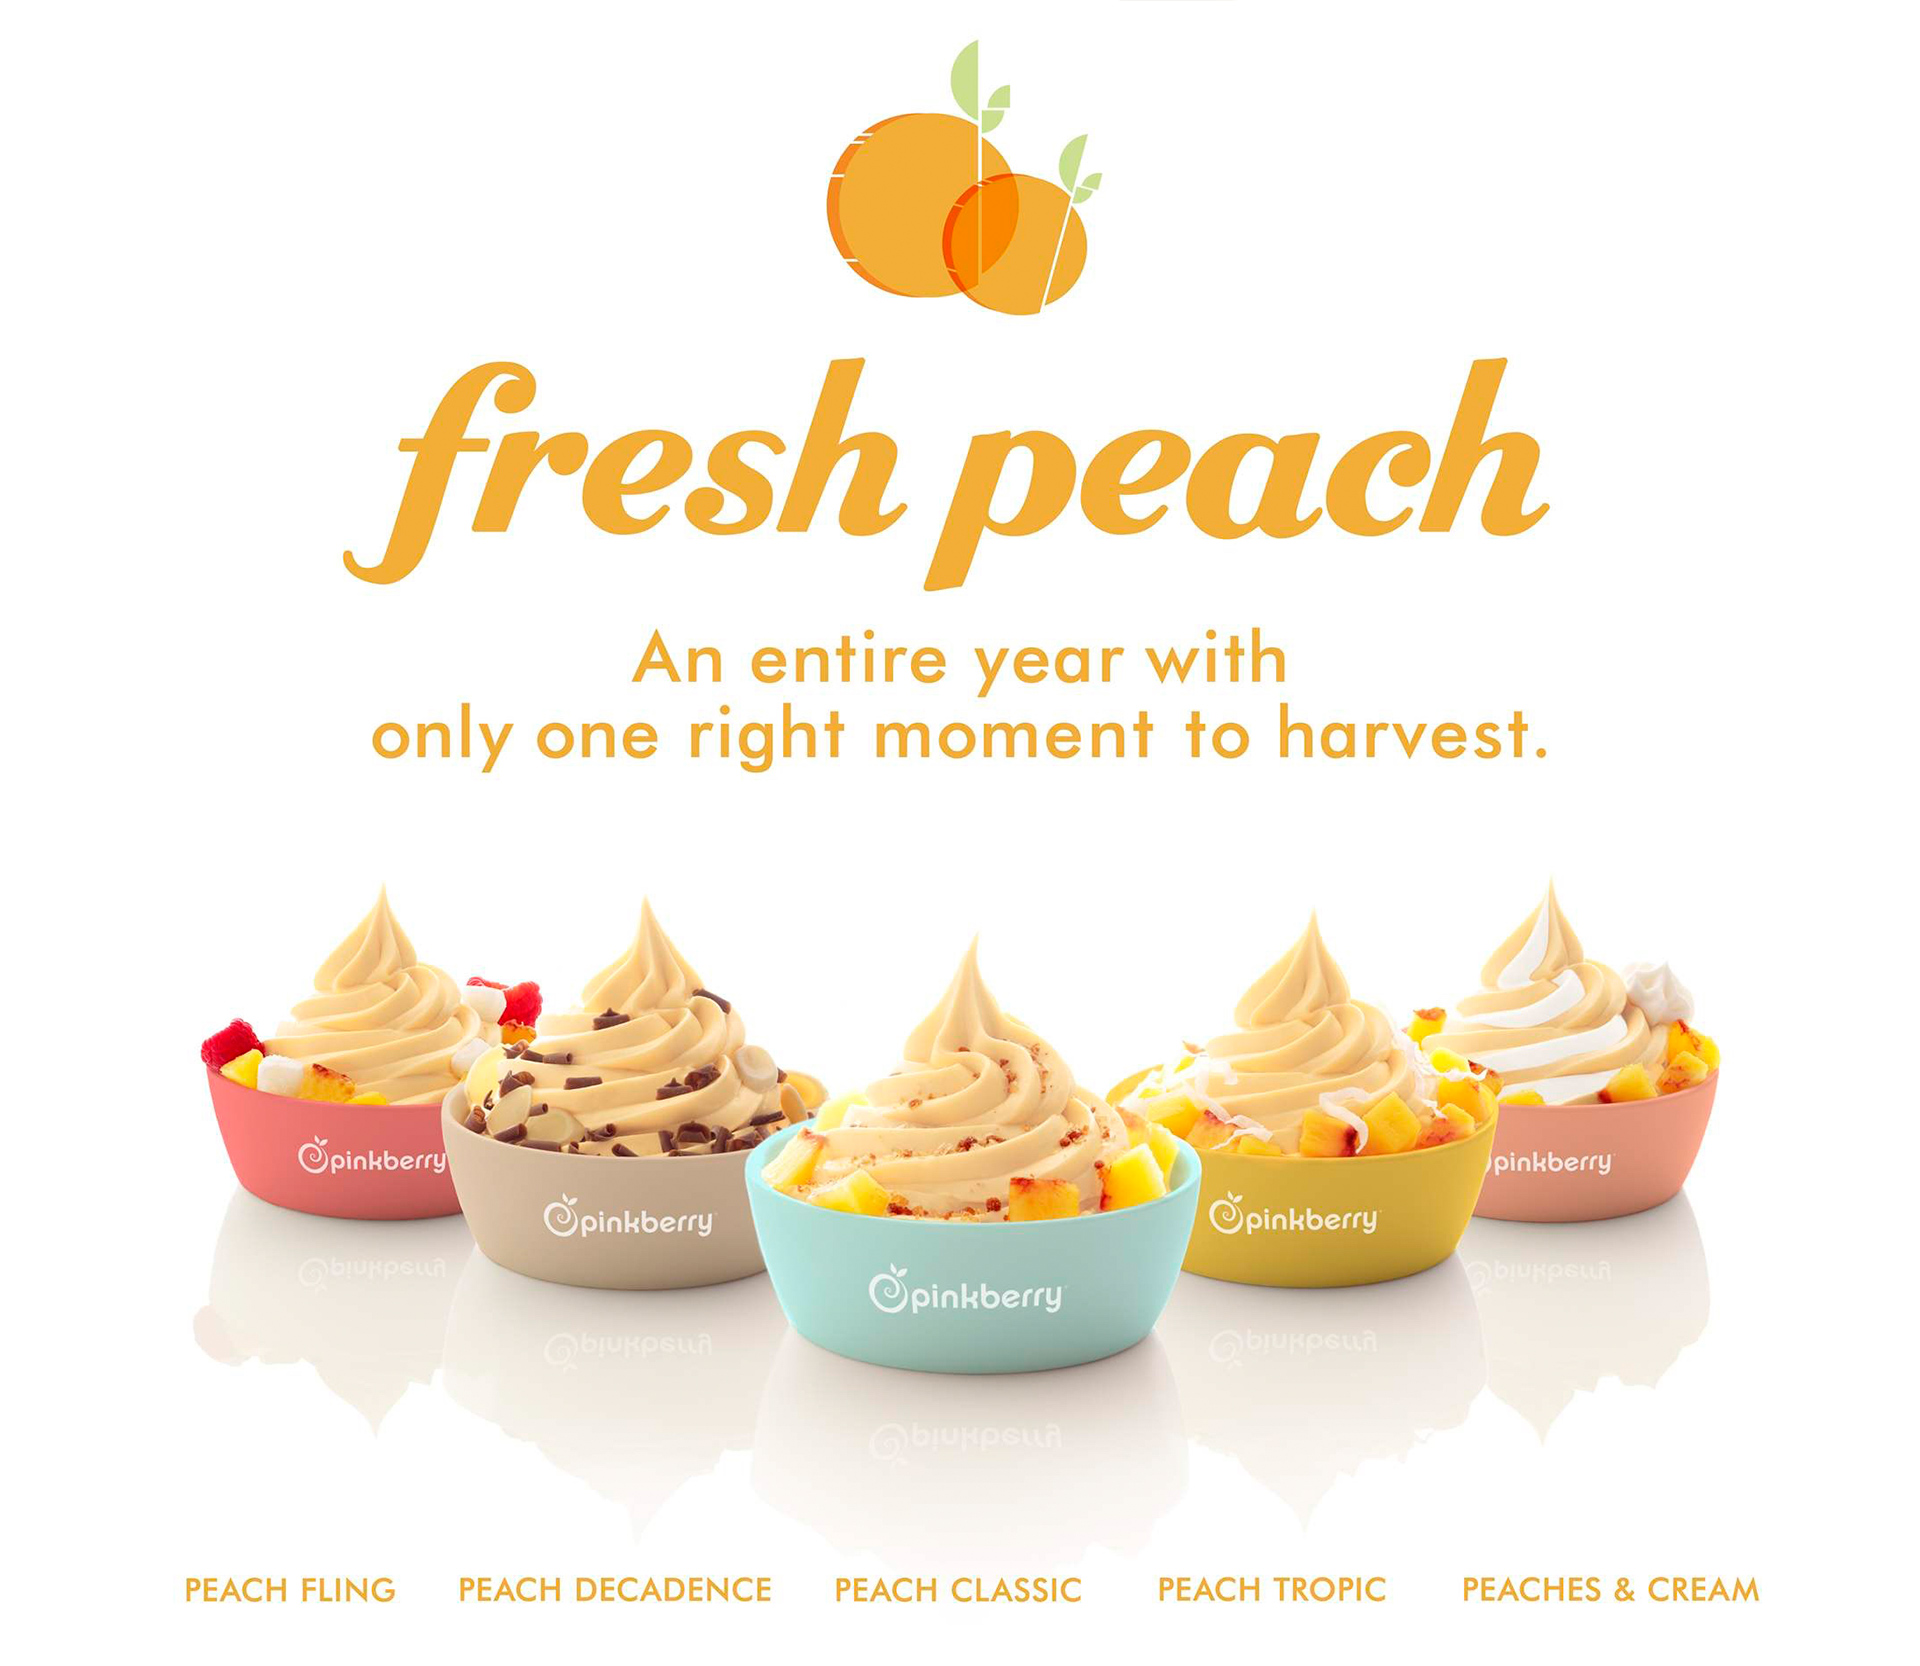 pinkberry_02_campaigns-2